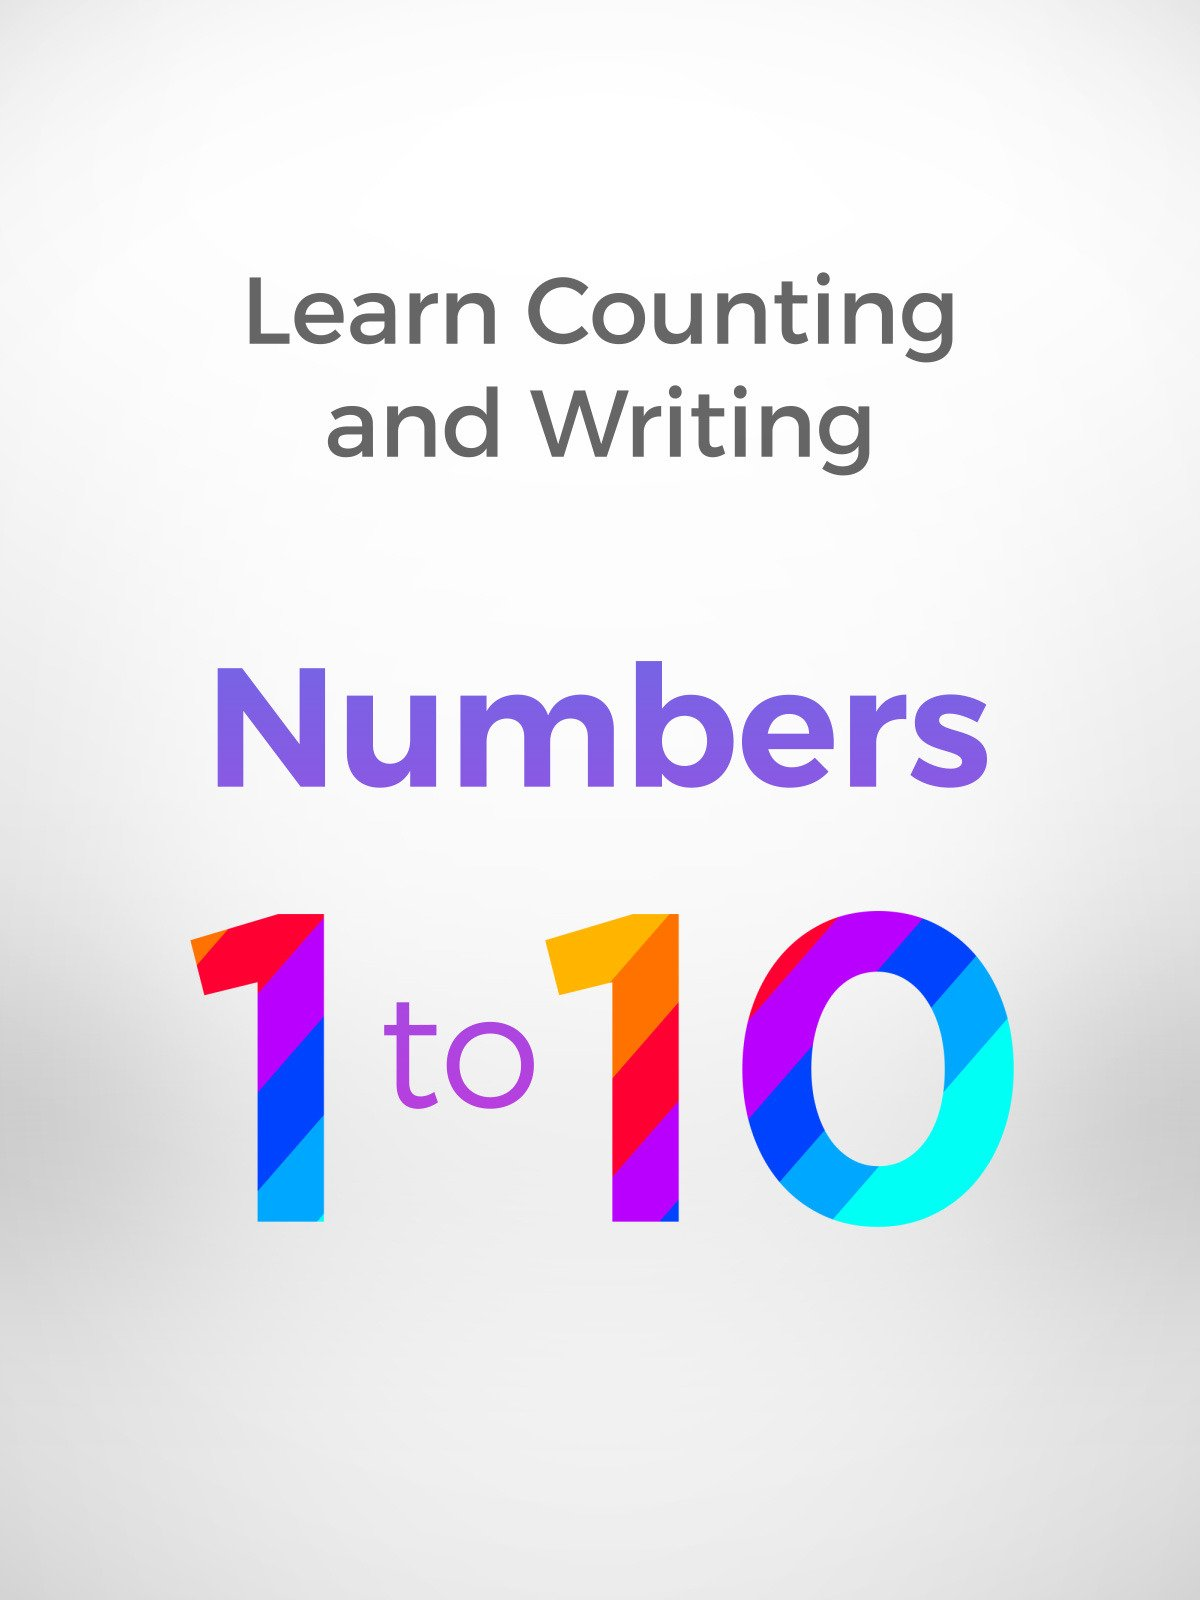 Learn Counting and Writing Numbers 1 to 10